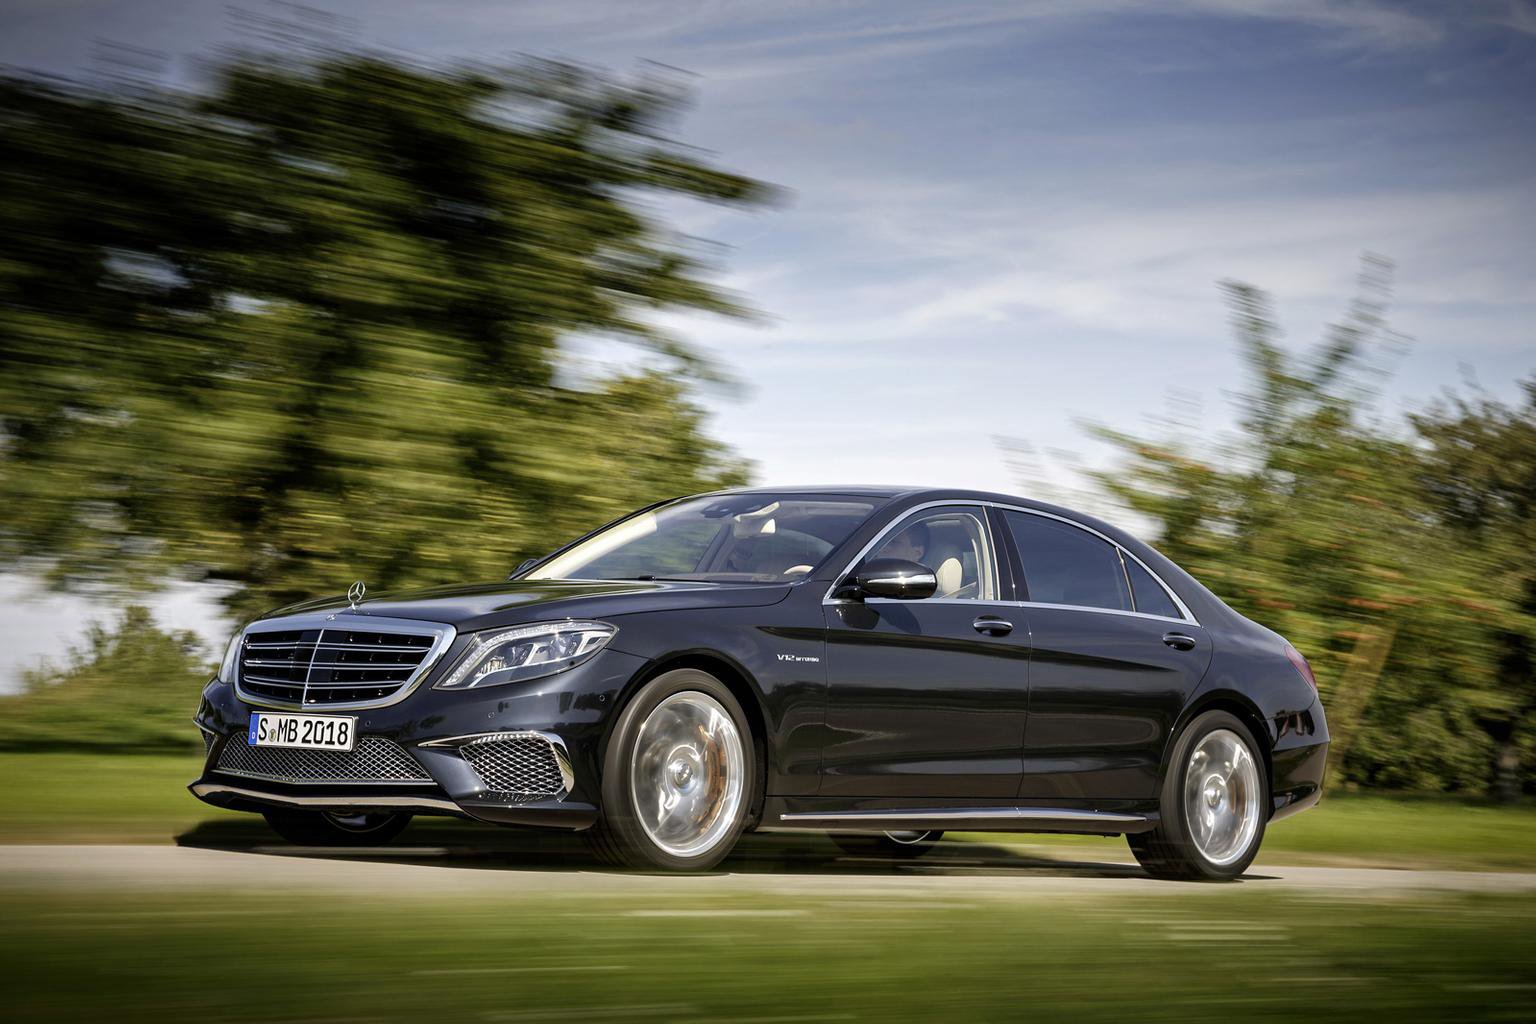 Mercedes-Benz S65 AMG revealed